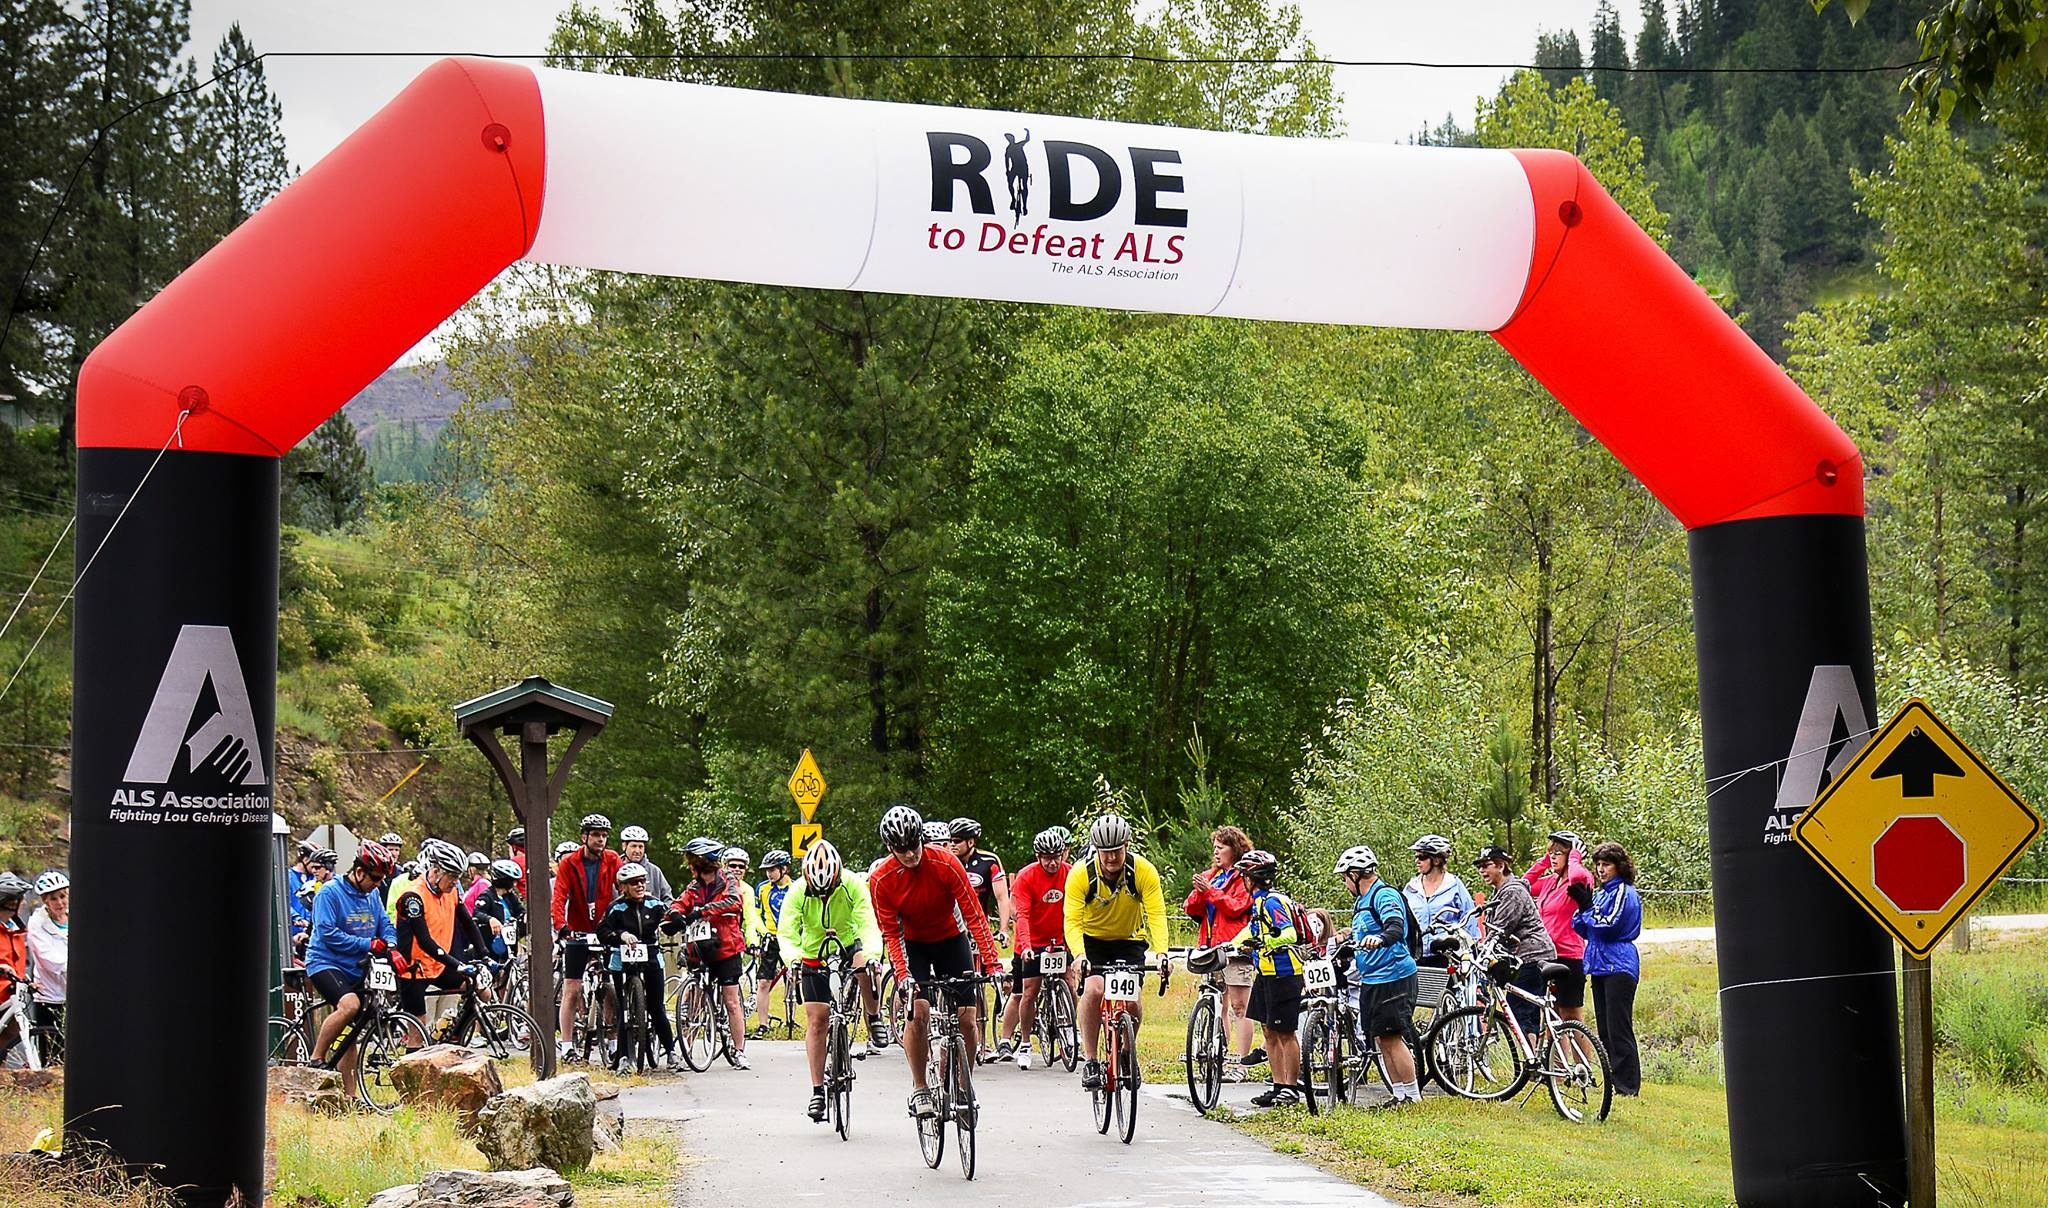 Silver Valley Ride To Defeat ALS